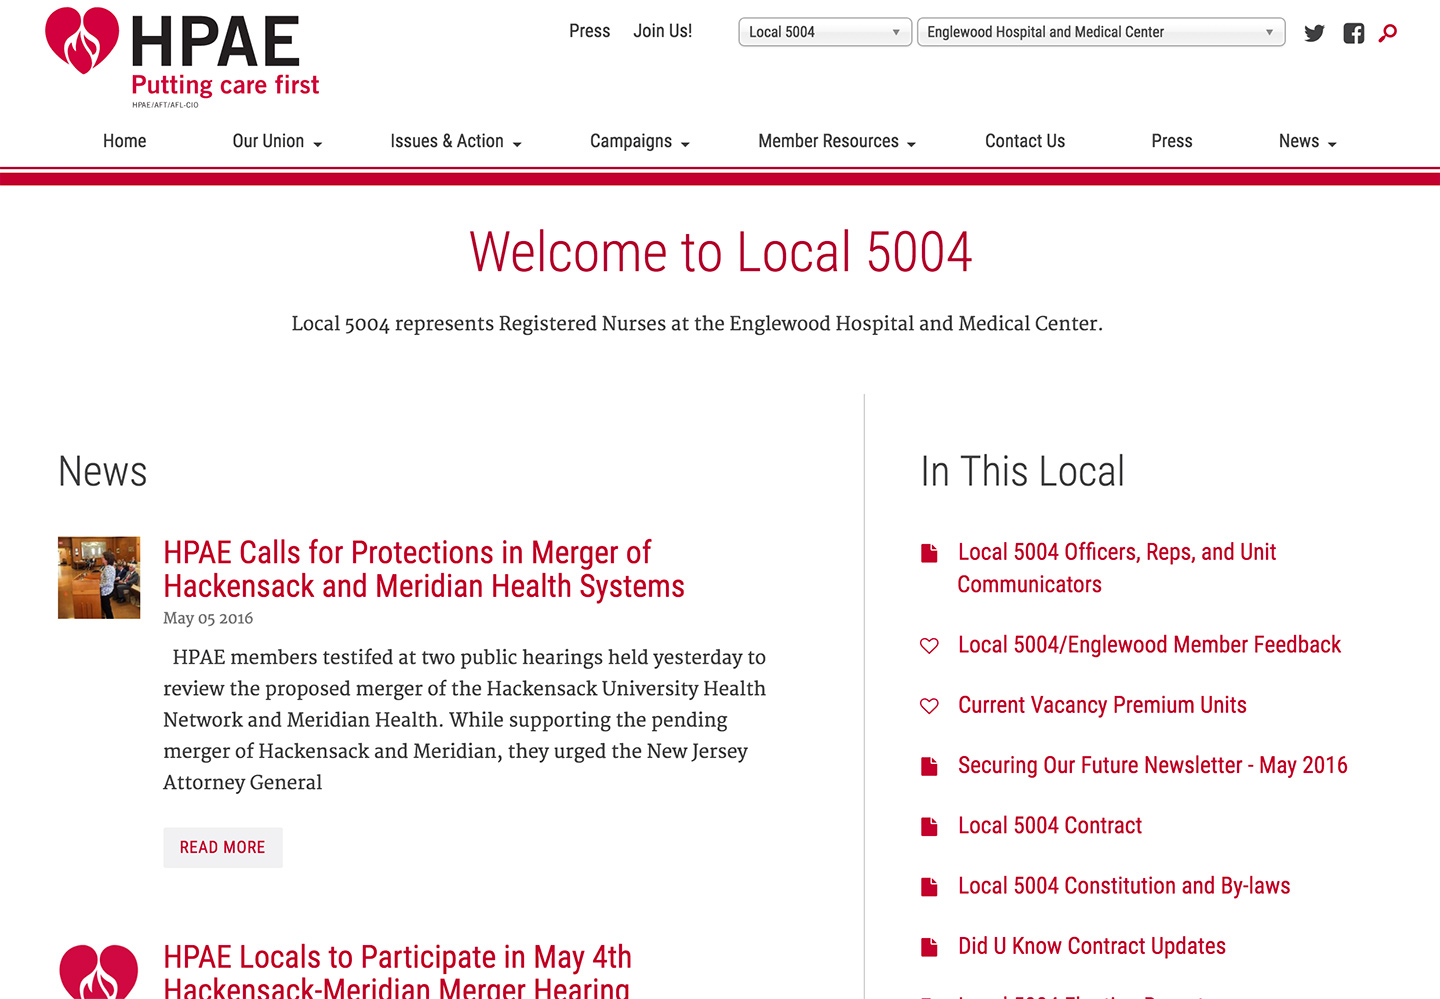 HPAE - Health Professionals and Allied Employees: Local Hub